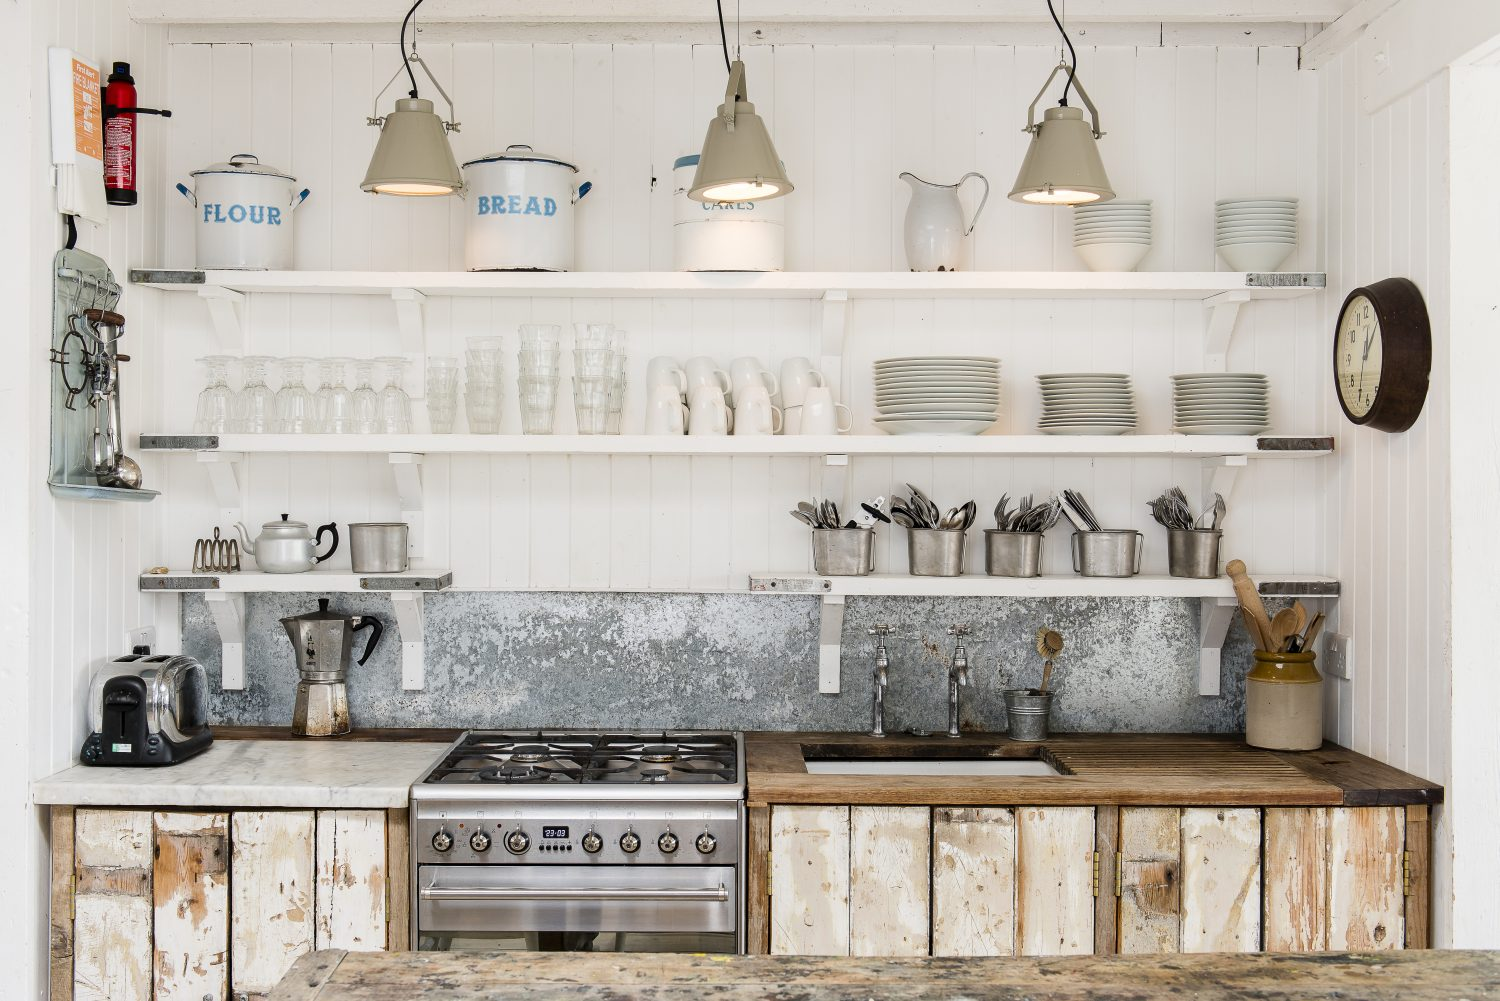 The kitchen is brilliantly simple, with cupboard doors made from boards salvaged from an original ceiling in the house. The white-painted shelves are scaffolding boards. The splashback is galvanised steel and the lights are from Pale & Interesting. The kitchen table provides another preparation area